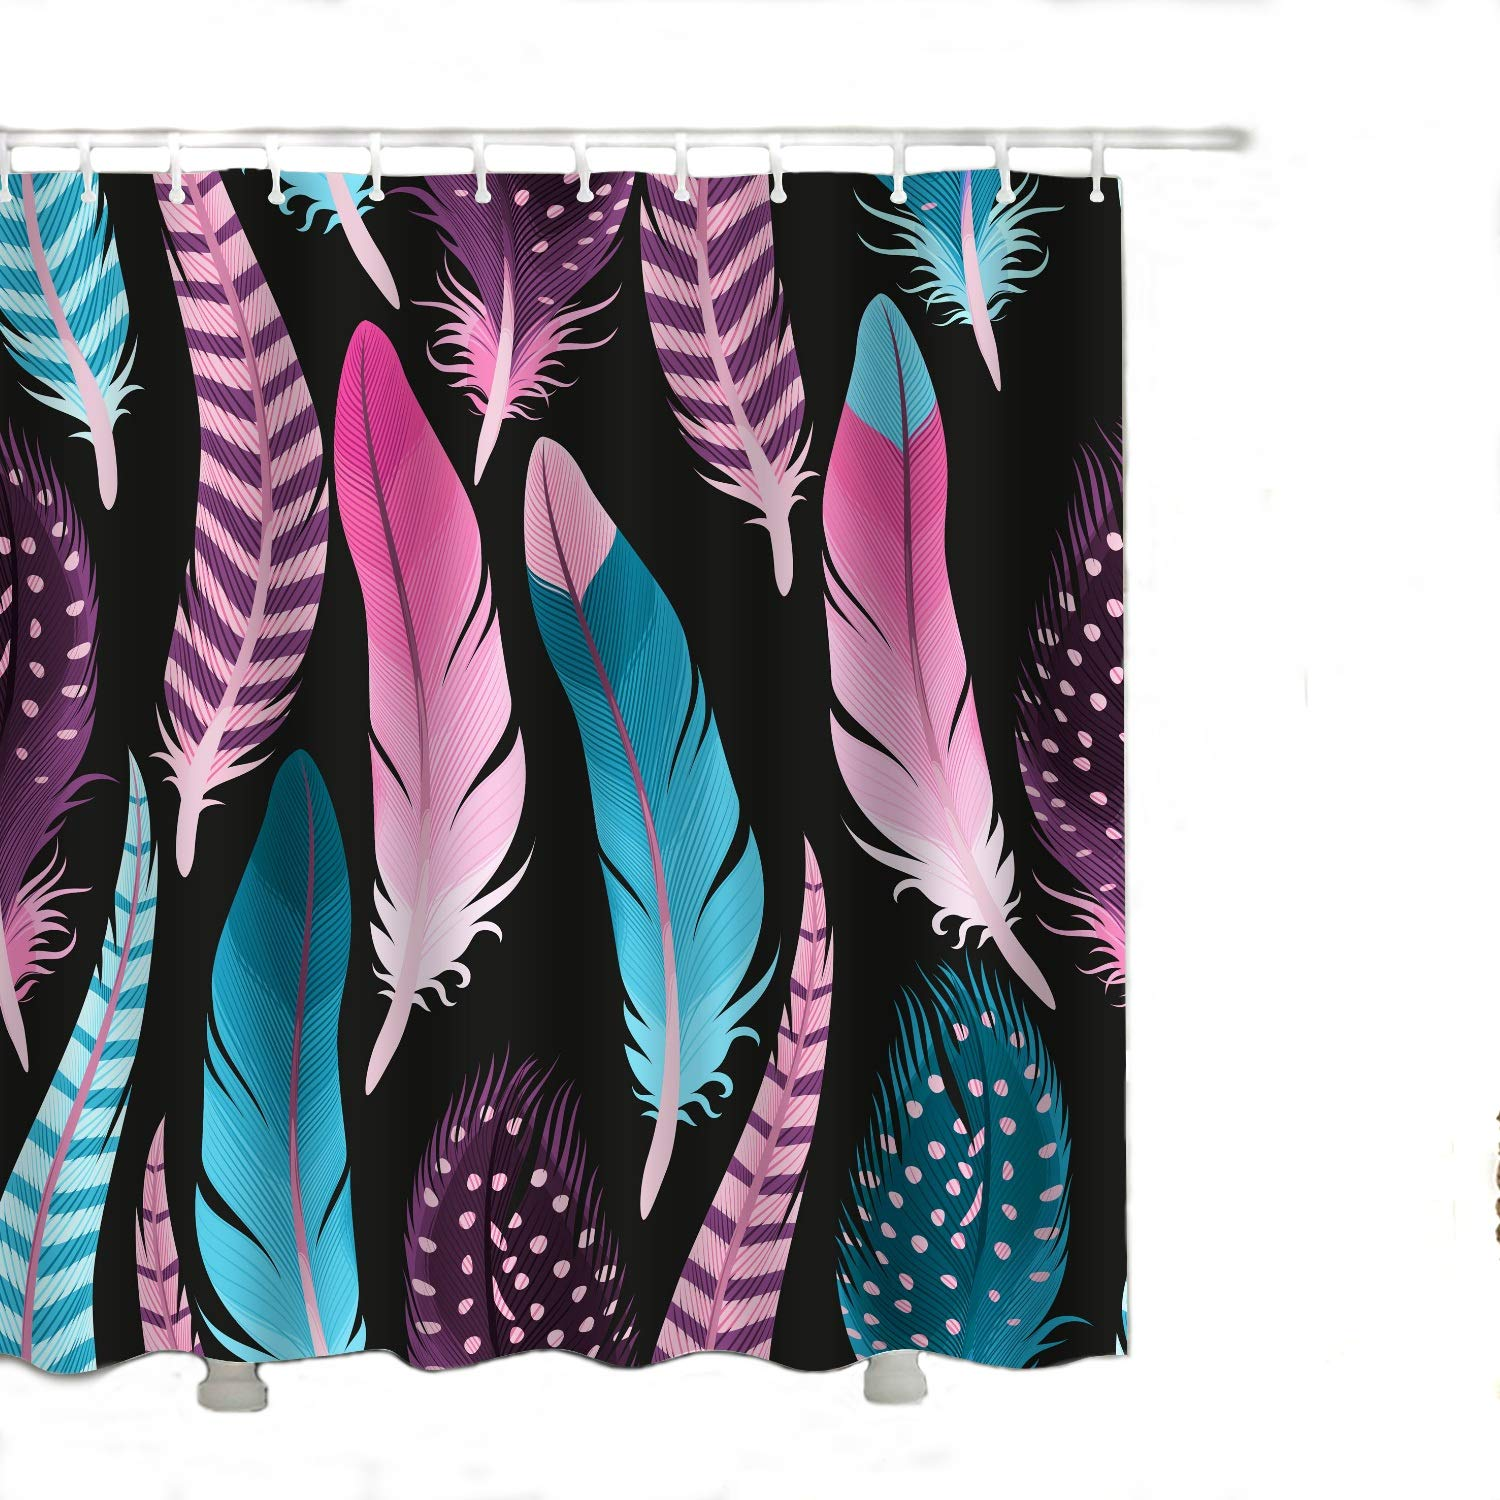 Alicemall Pink And Blue Feather Prints Colorful Black Shower Curtain Set Waterproof Polyester Fabric Bath Curtain71x71 Inch 12 Hooks Included 71 W X